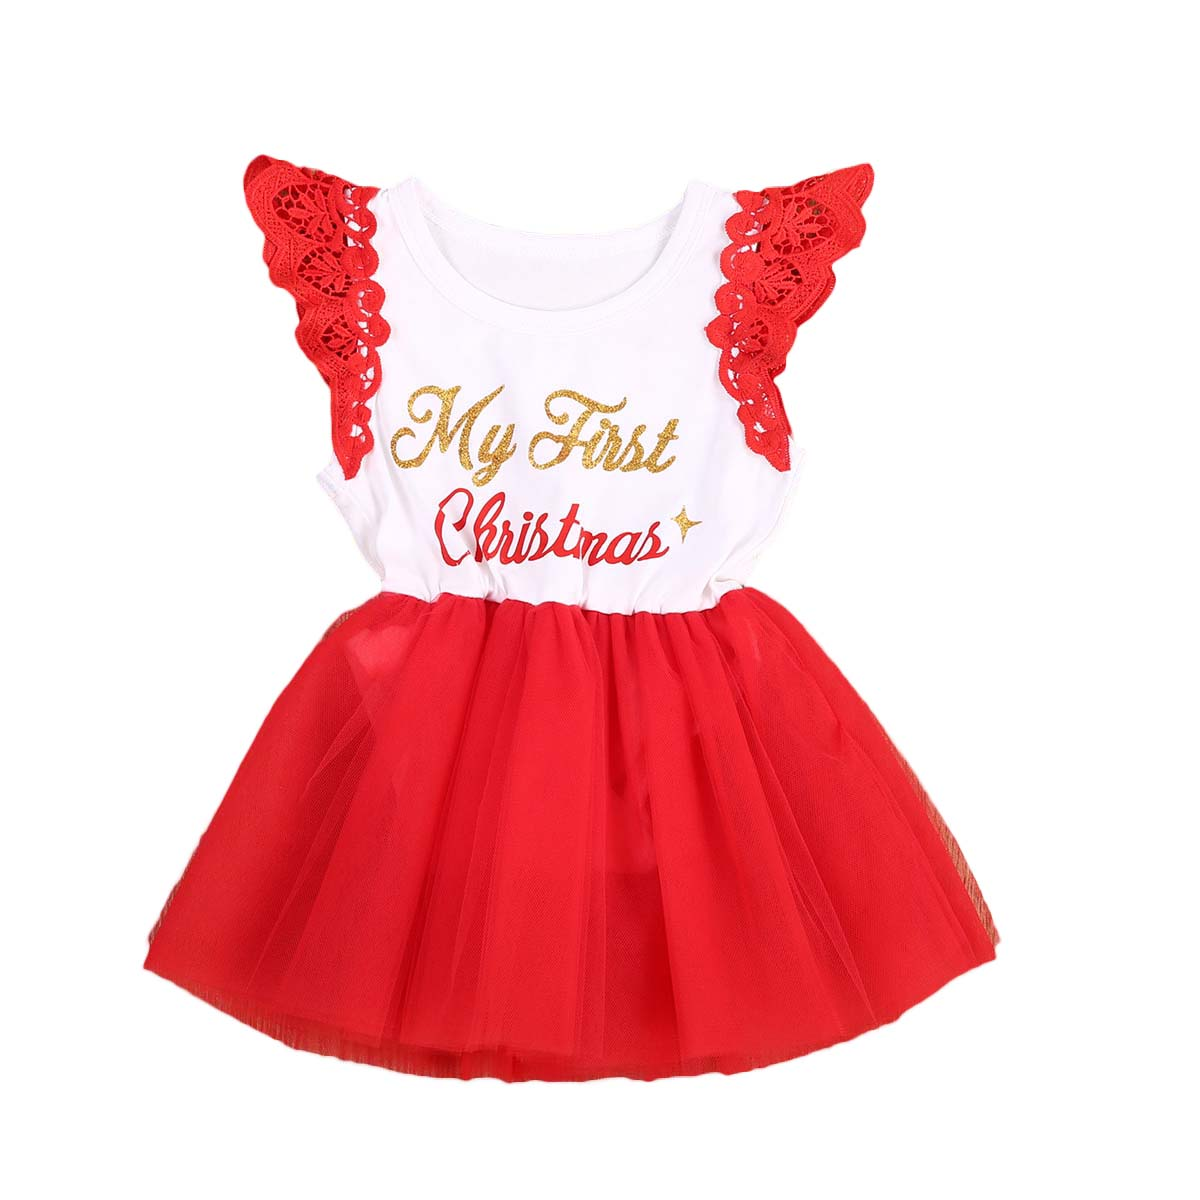 Pudcoco 2017 New Christmas Baby Girls Romper Cute Letter Lace Off shoulder Princess Red Romper Jumpsuit for baby first christmas цены онлайн